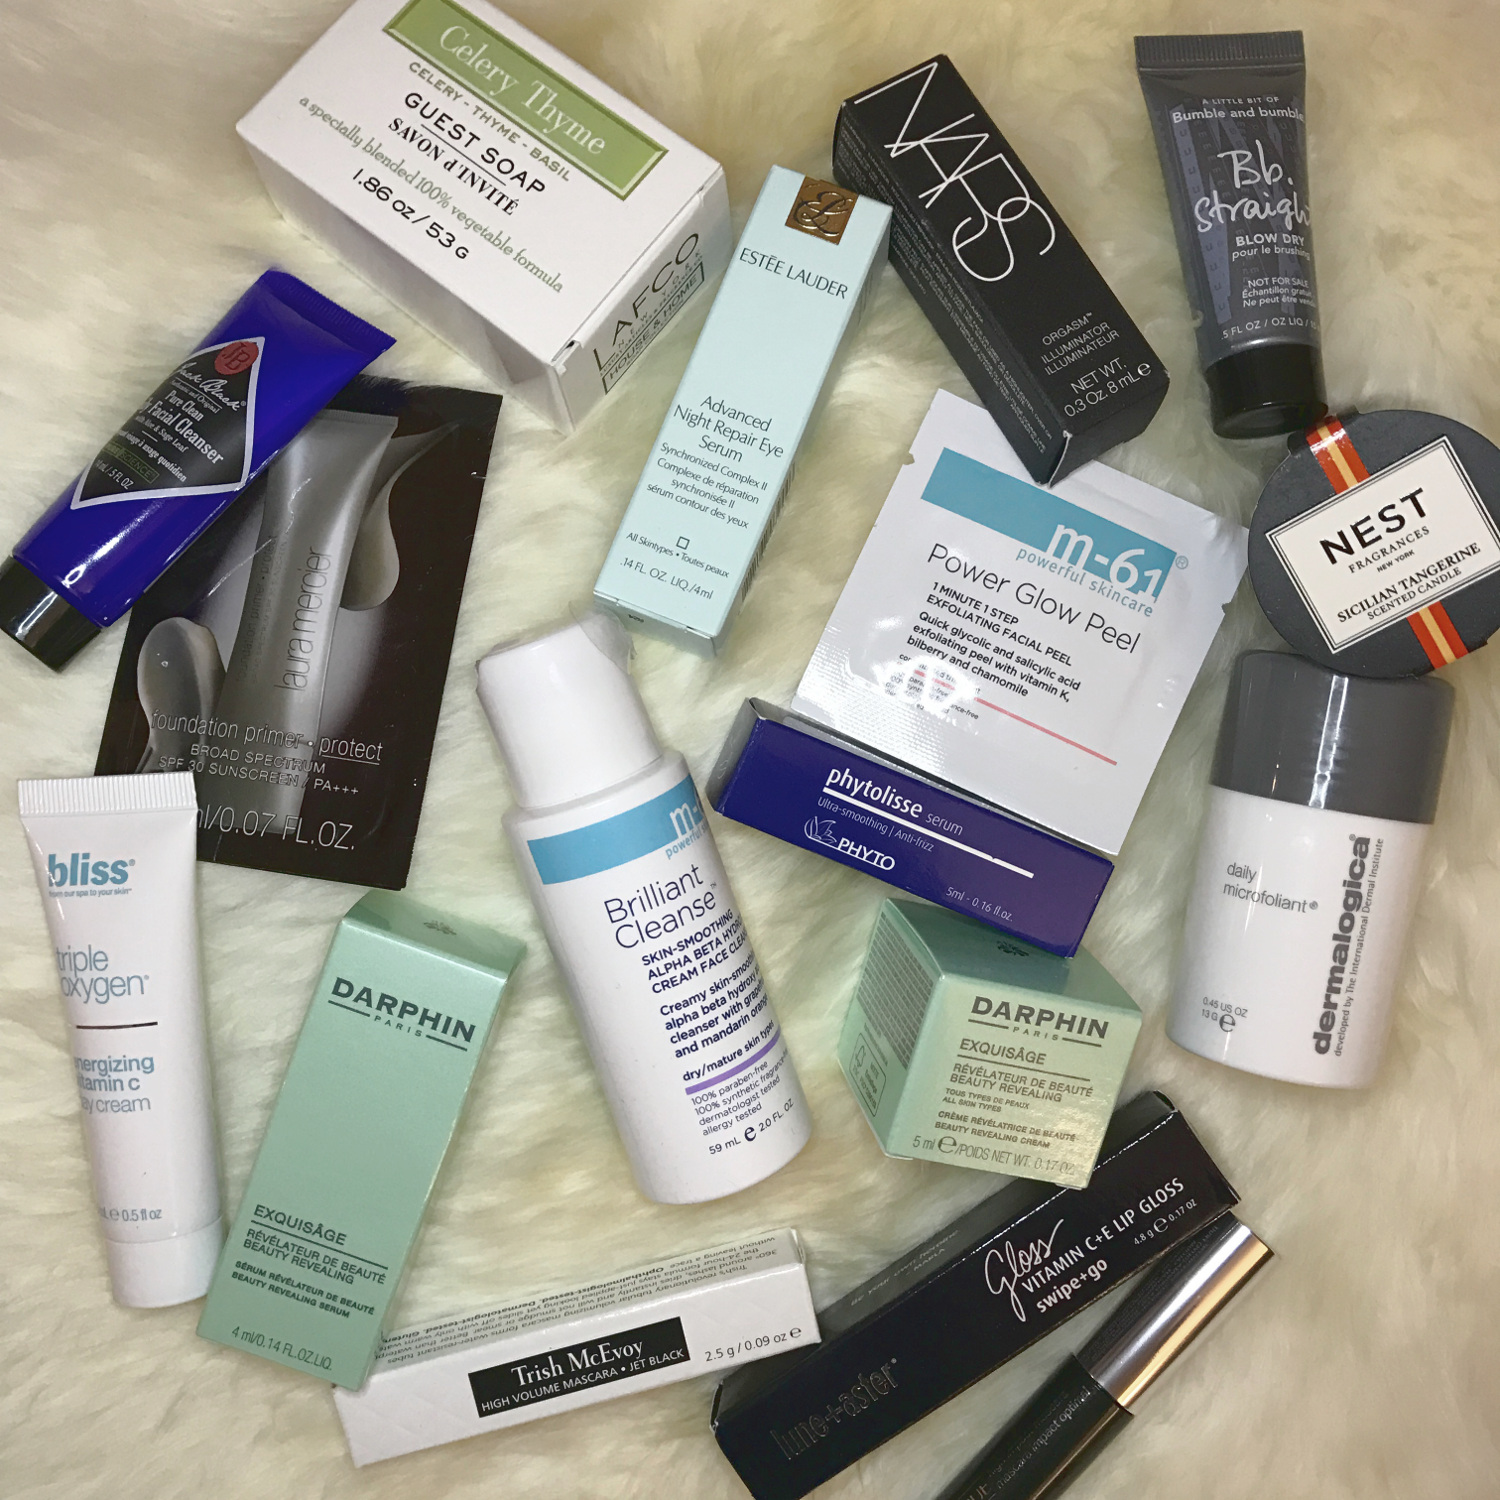 Bluemercury carries Darphin, M61, Bliss, Dermalogica, and Trish McEvoy